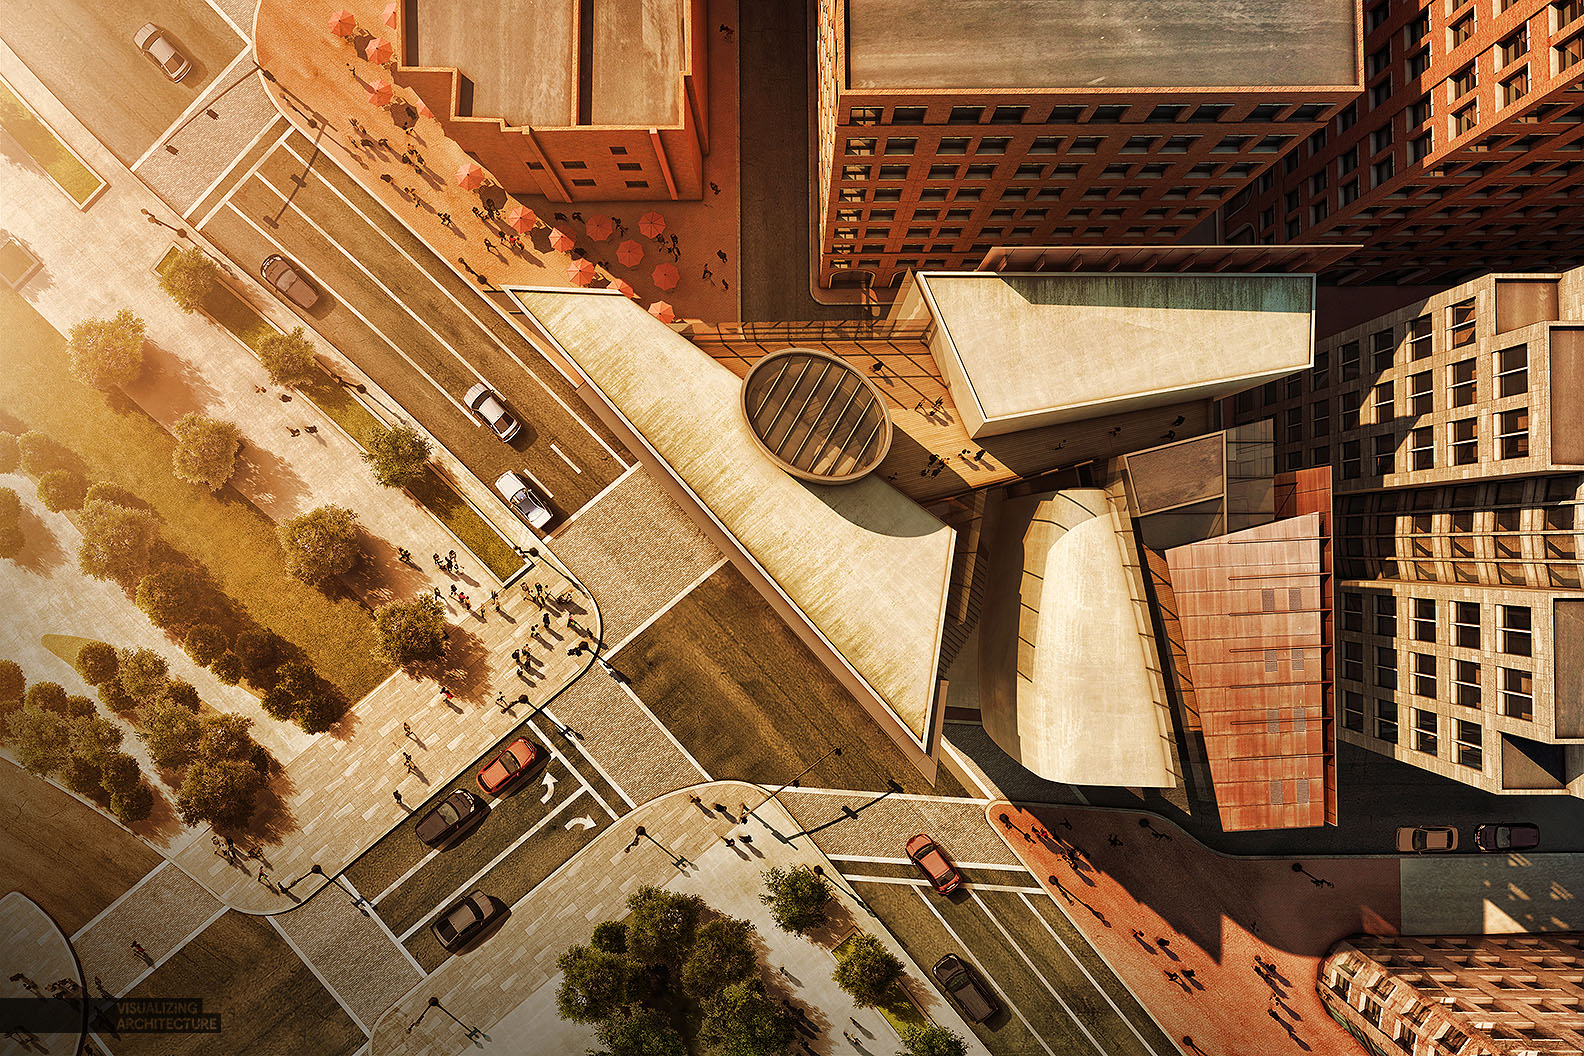 BC_Aerial_5_final_boston_aerial_illustration